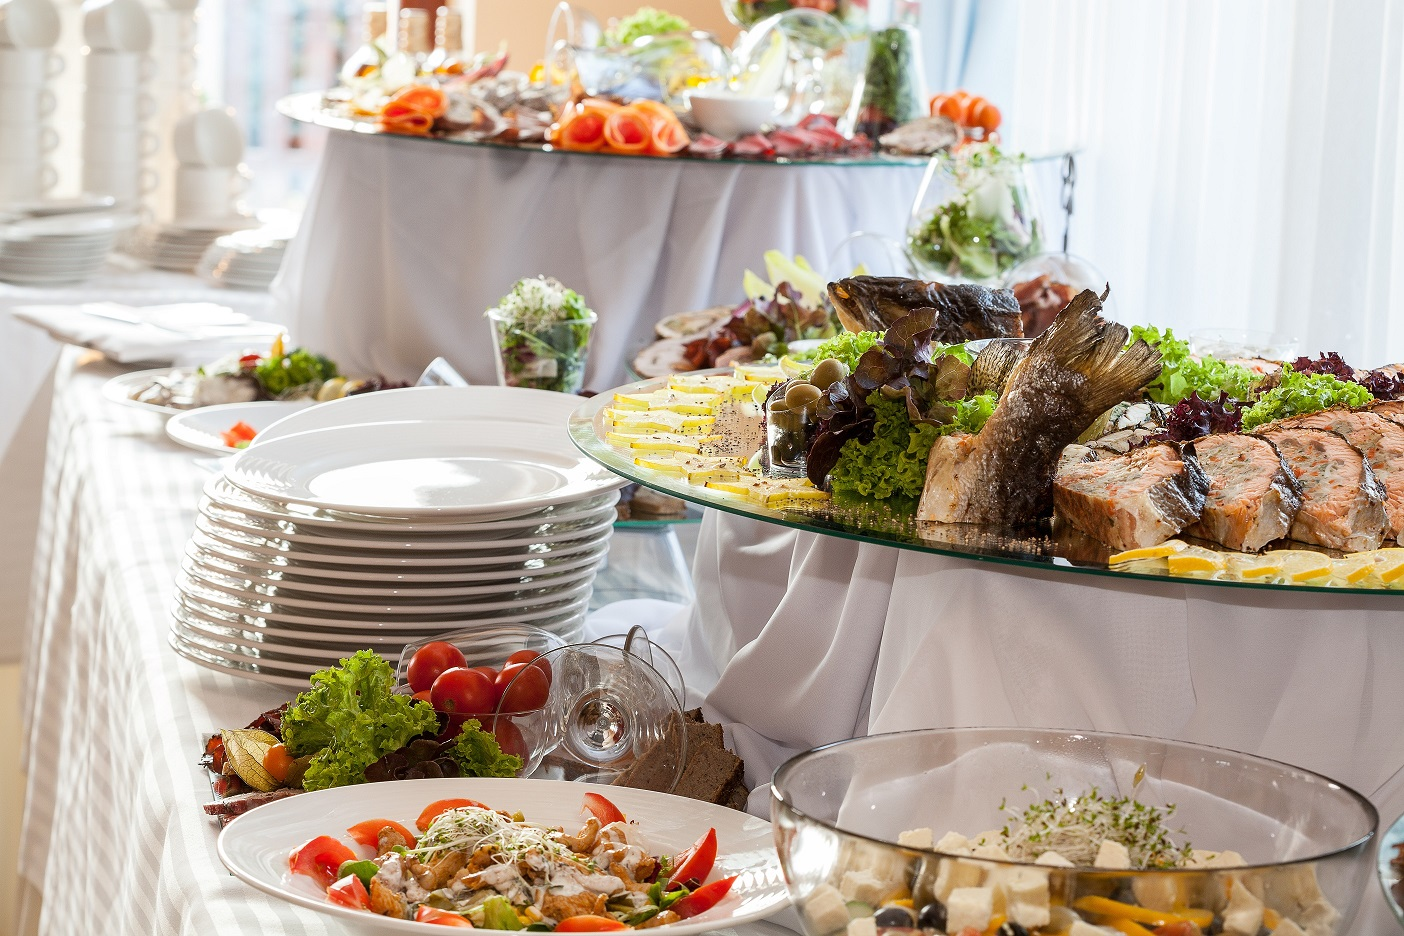 5 common wedding catering mistakes to avoid